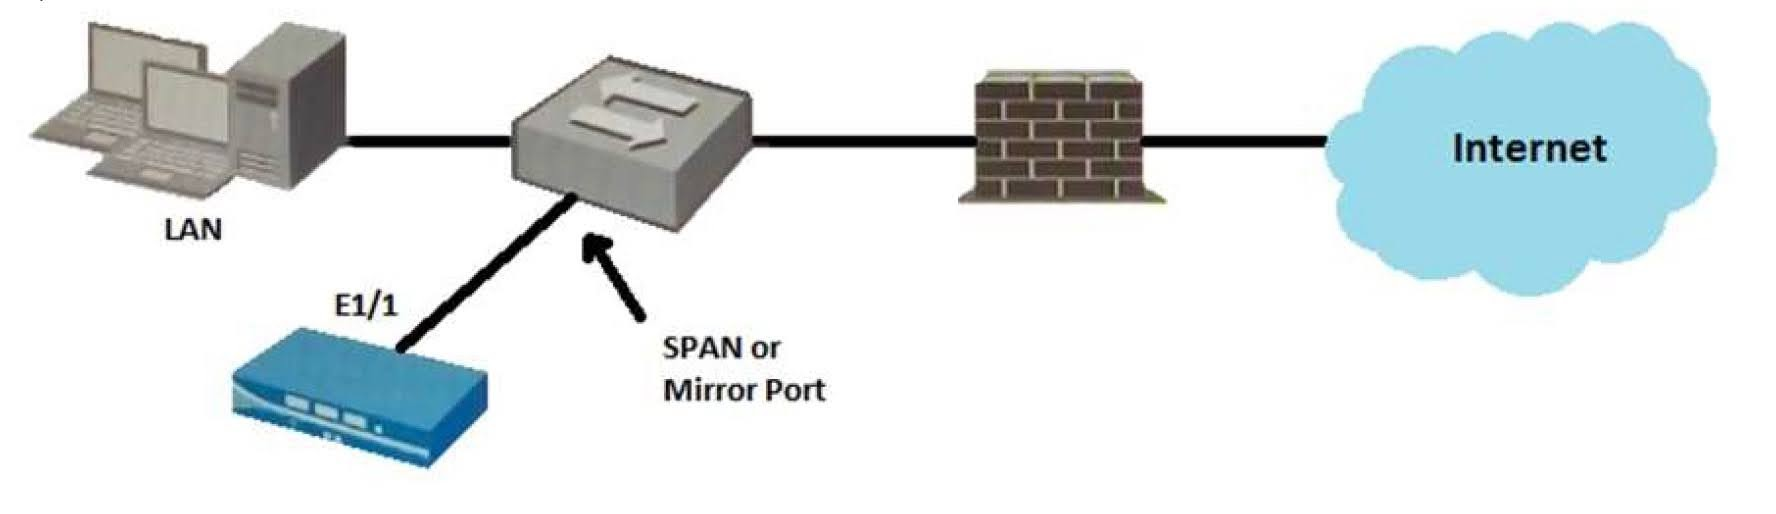 Given the topology, which zone type should you configure for firewall interface E1/1?